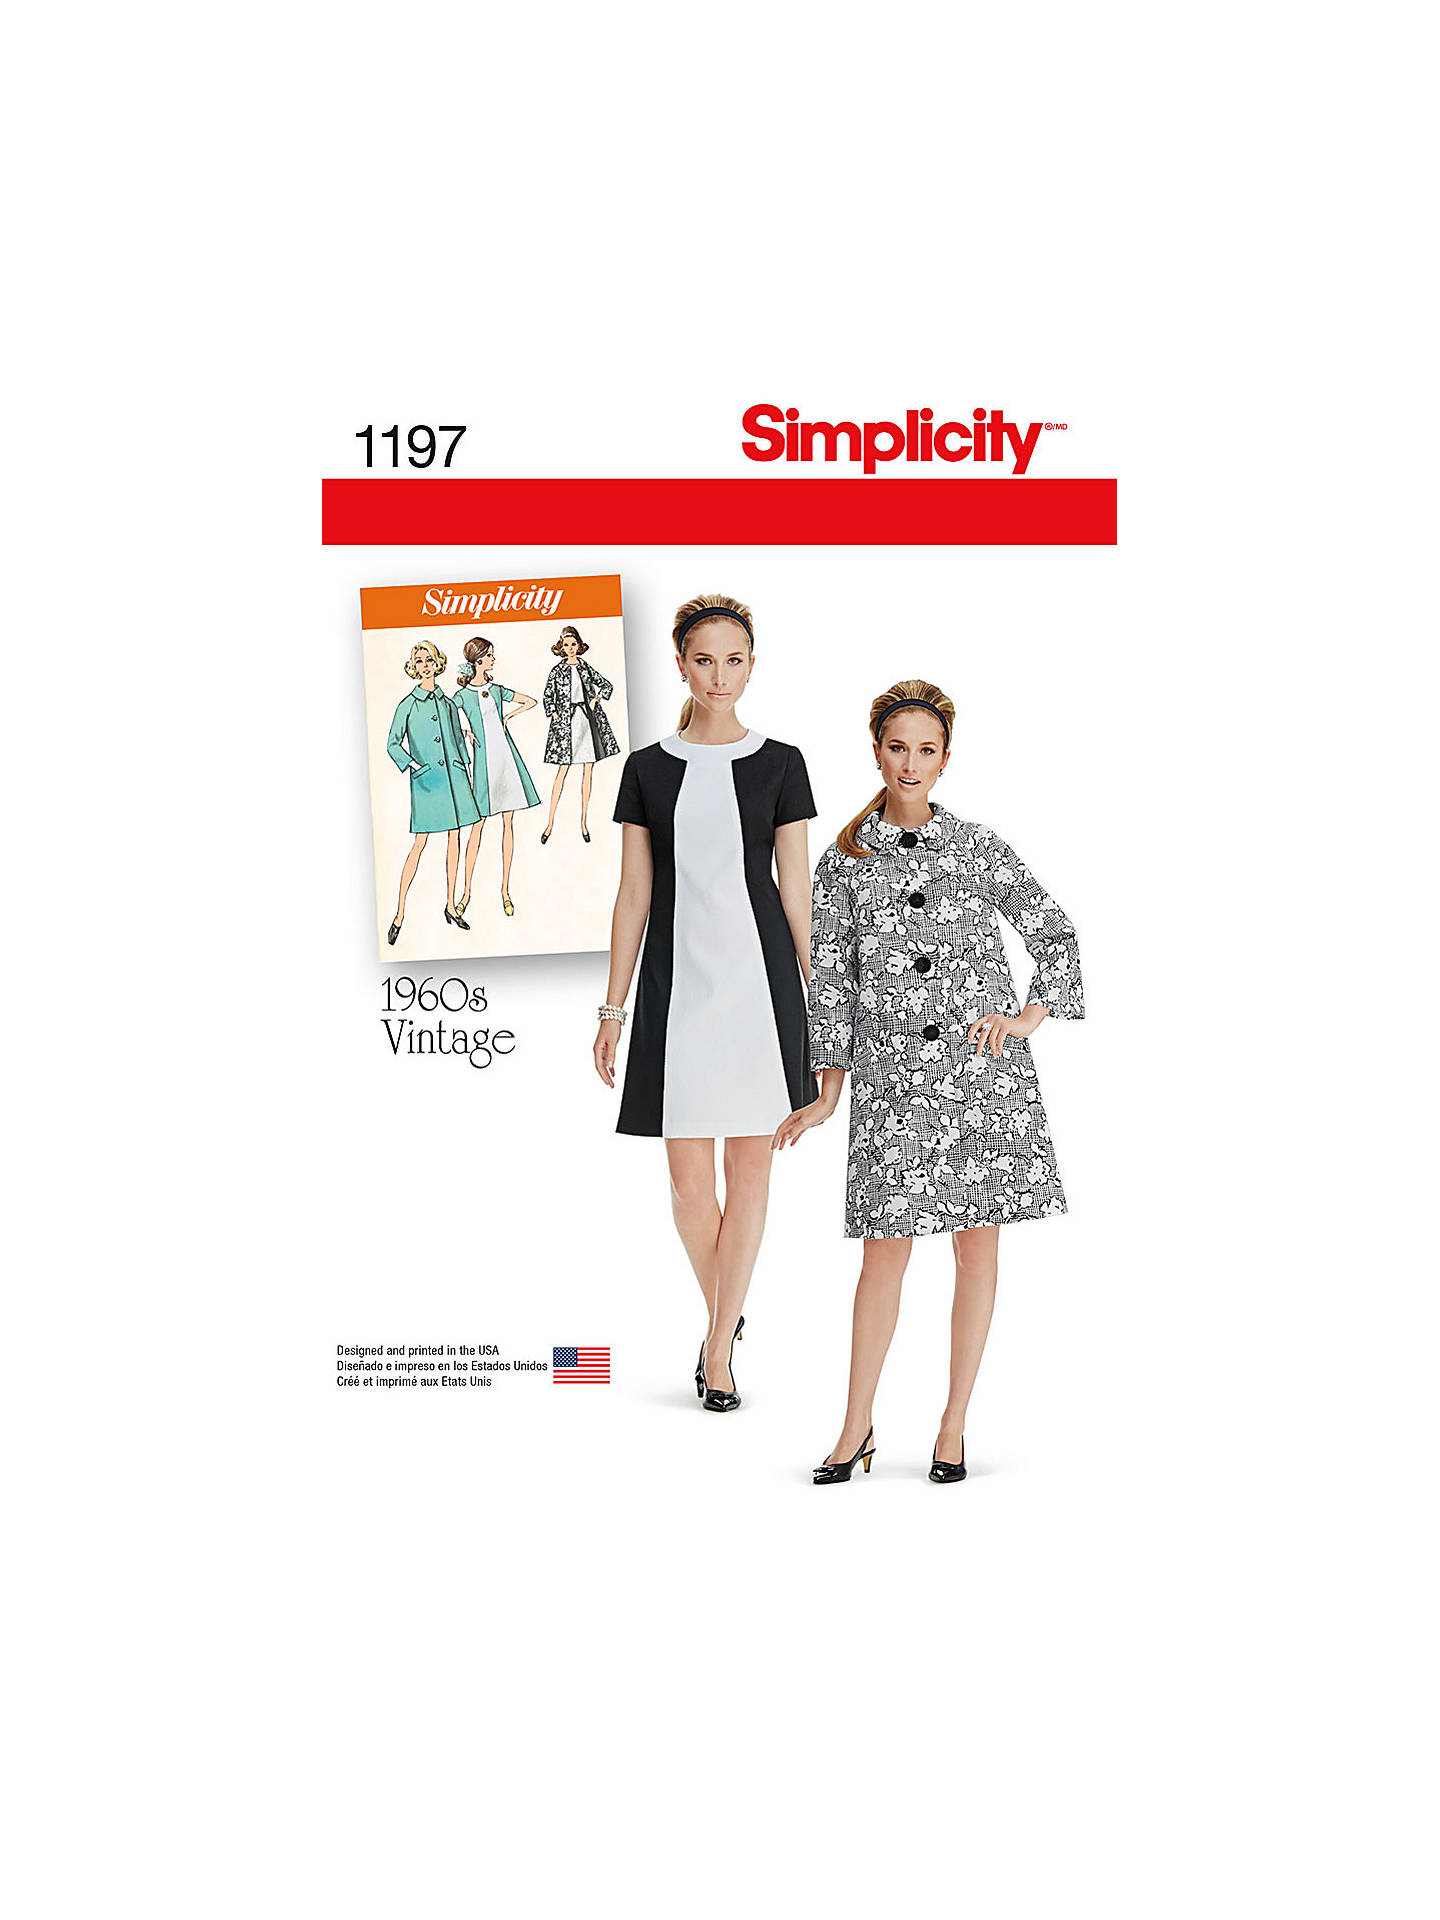 BuySimplicity 1960s Vintage Women's Dress and Coat Sewing Pattern, 1197, H5 Online at johnlewis.com